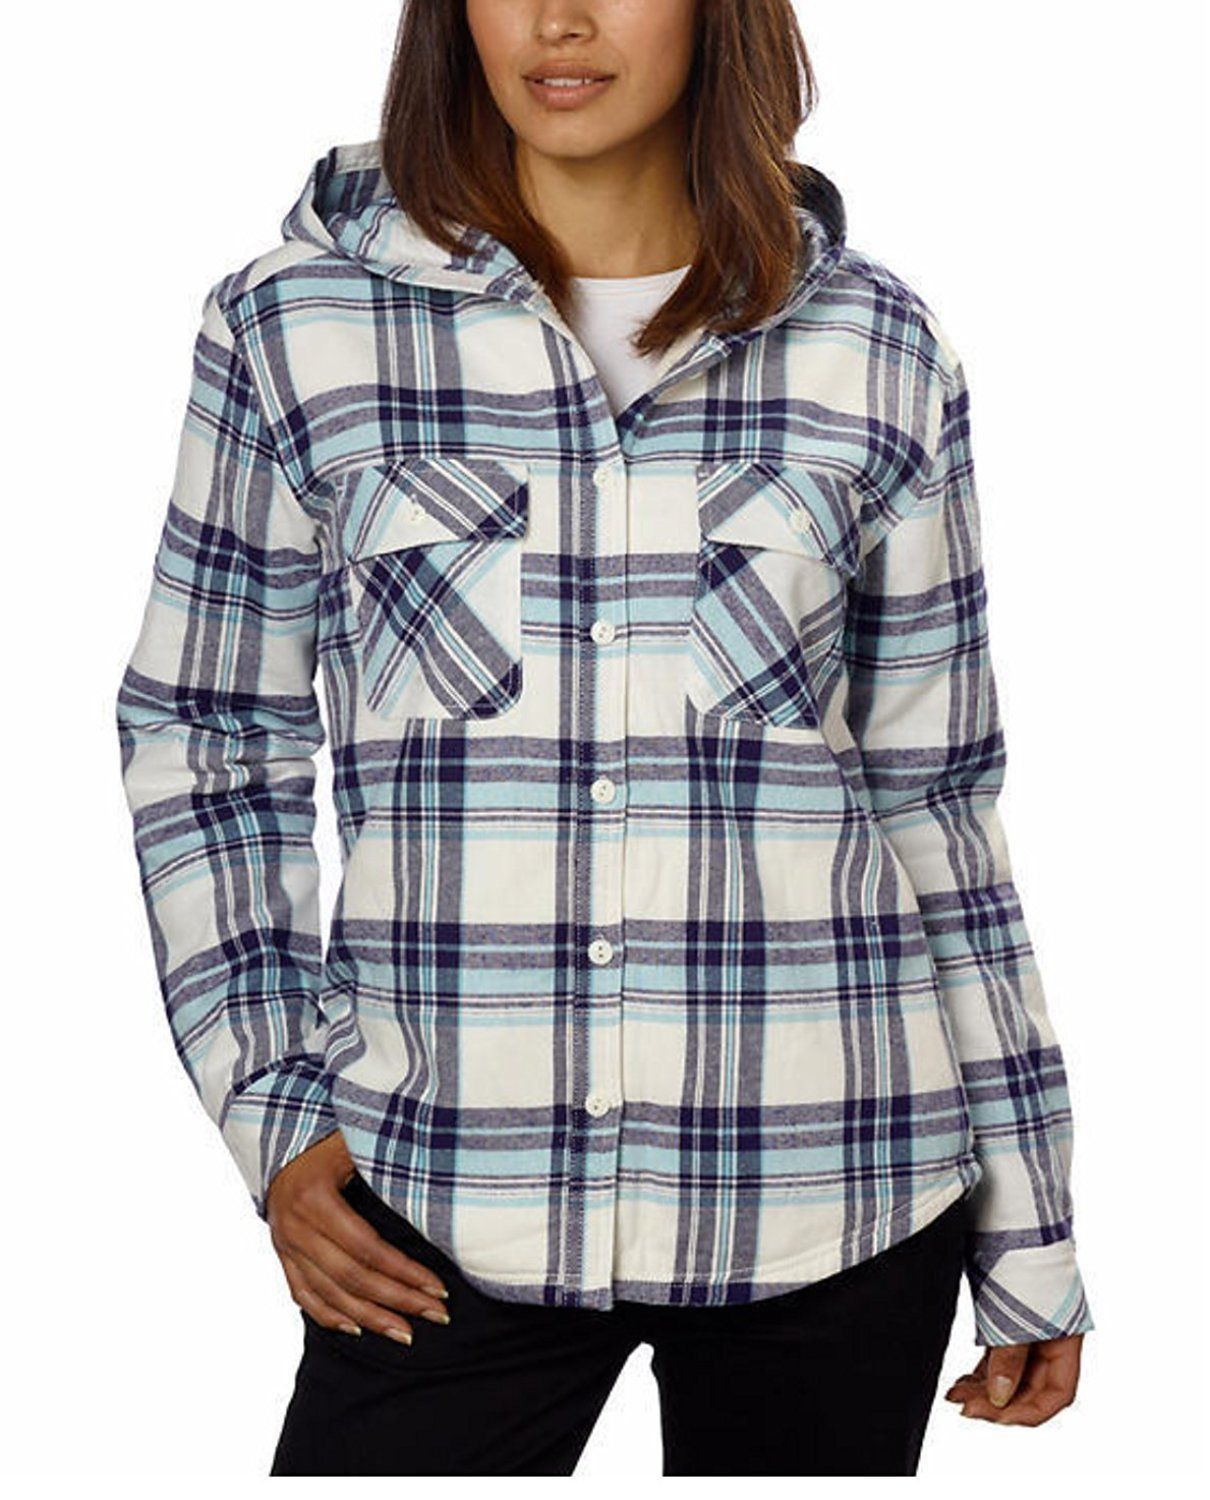 bea2dea94549 Boston Traders Womens Sherpa Lined Hooded Flannel Top